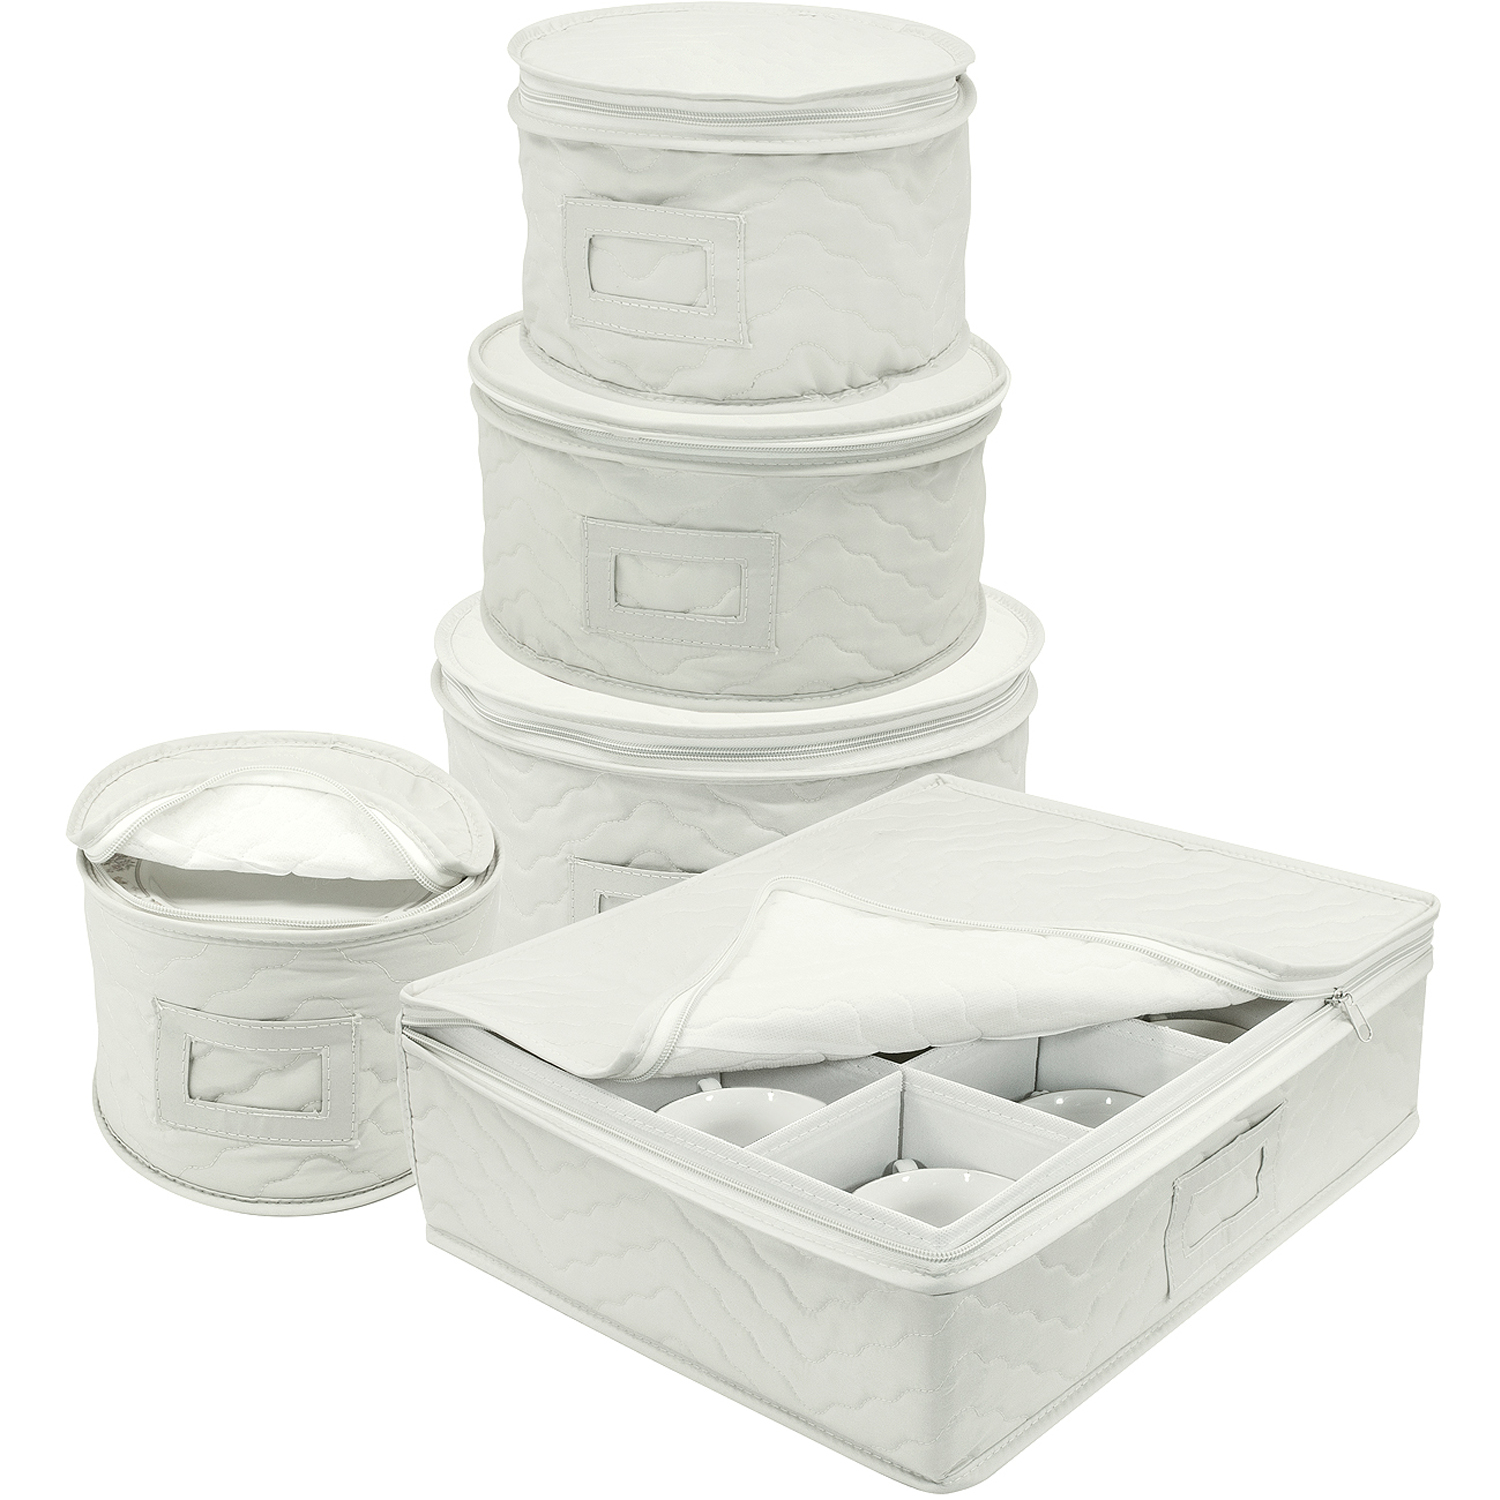 Sorbus 5-Piece Dinnerware Storage Set, Service for 12, Quilted Protection, Includes Felt Protectors and... by Sorbus